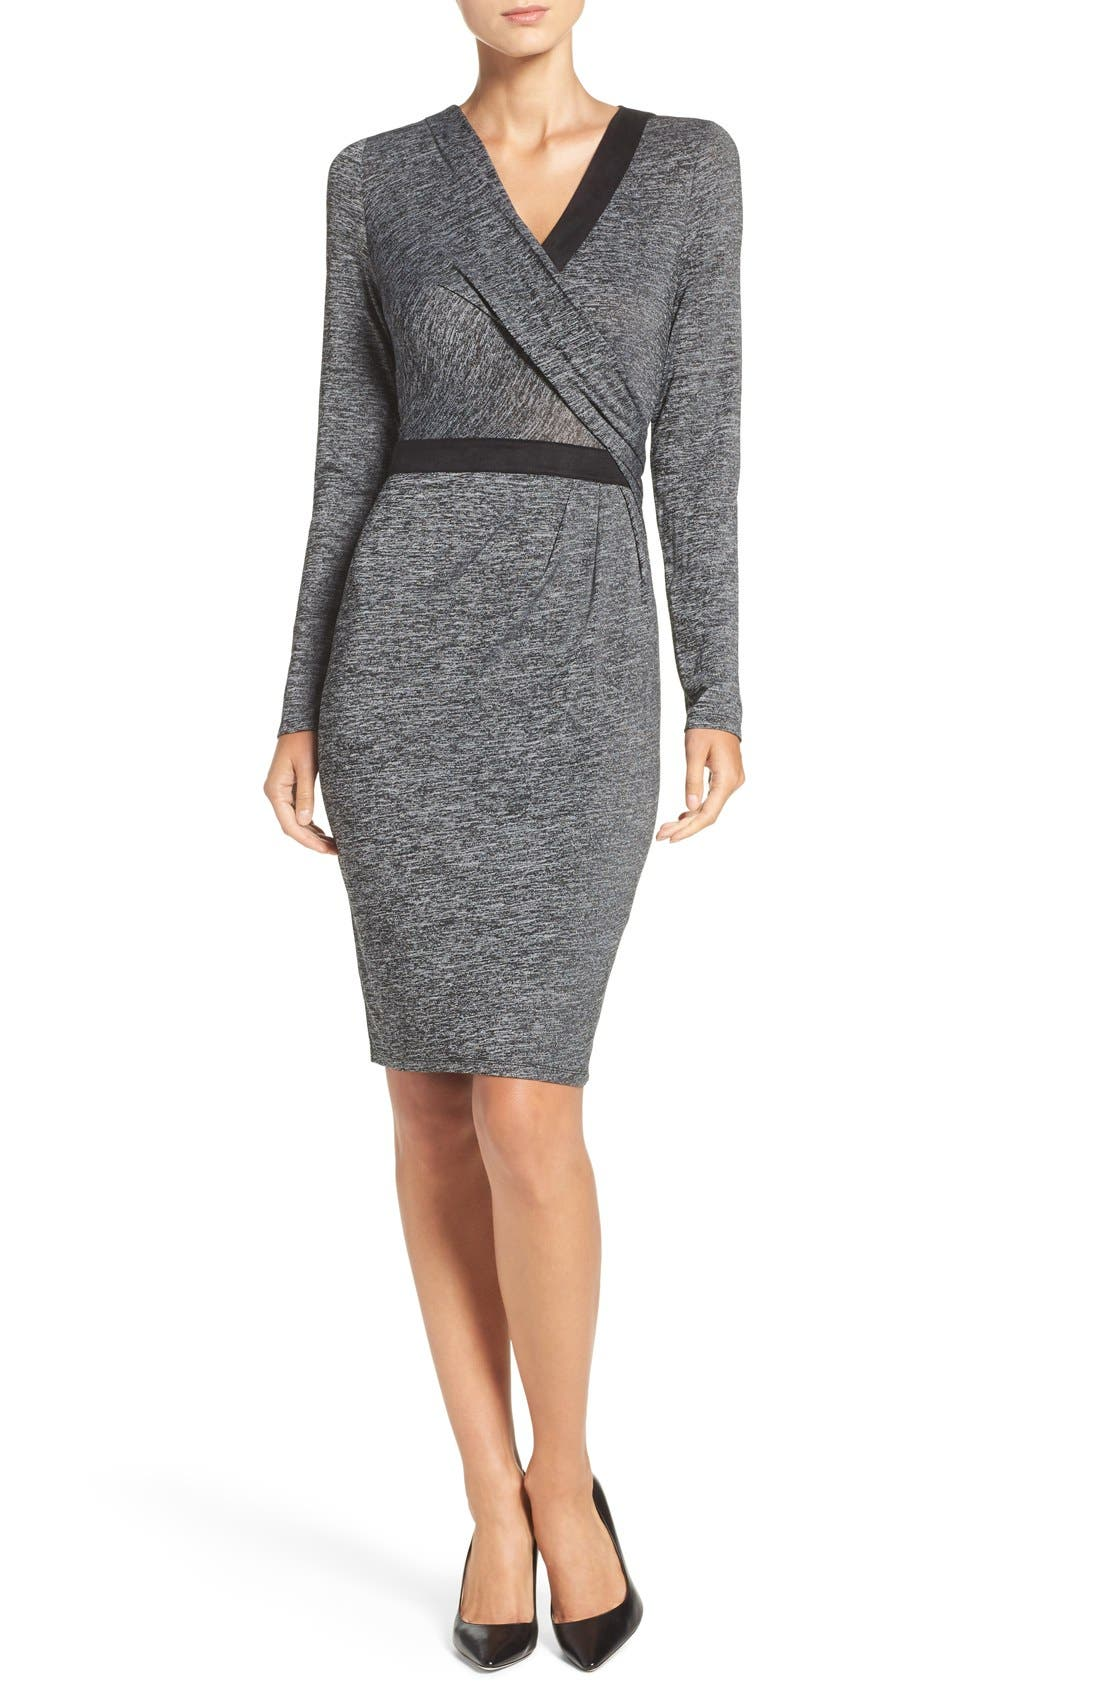 Alternate Image 1 Selected - Adrianna Papell Knit Faux Wrap Dress